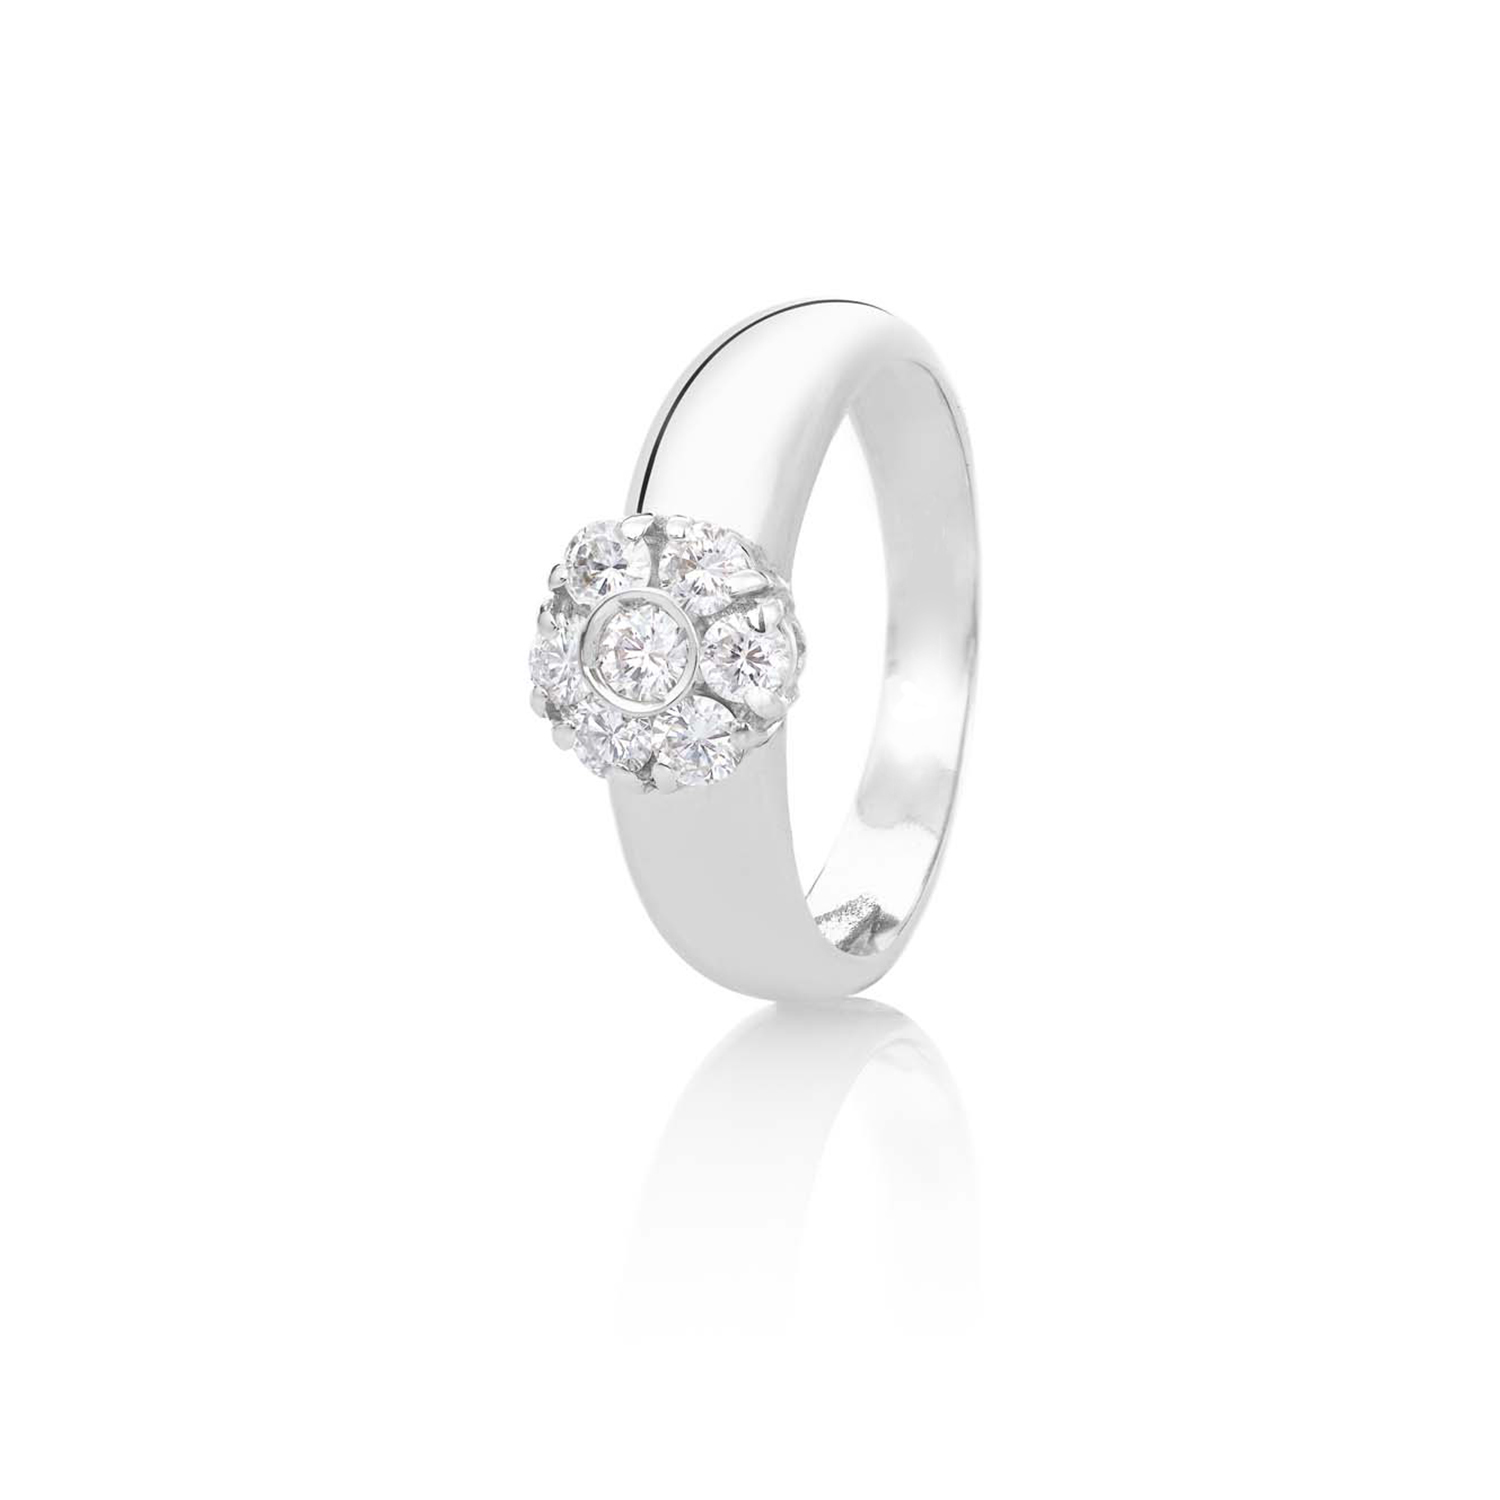 Sensi joyas jewellery Granada silver engagement18K WHITE GOLD RING DECORATED WITH A 0,53CT OF BRILLIANT CUT DIAMOND.